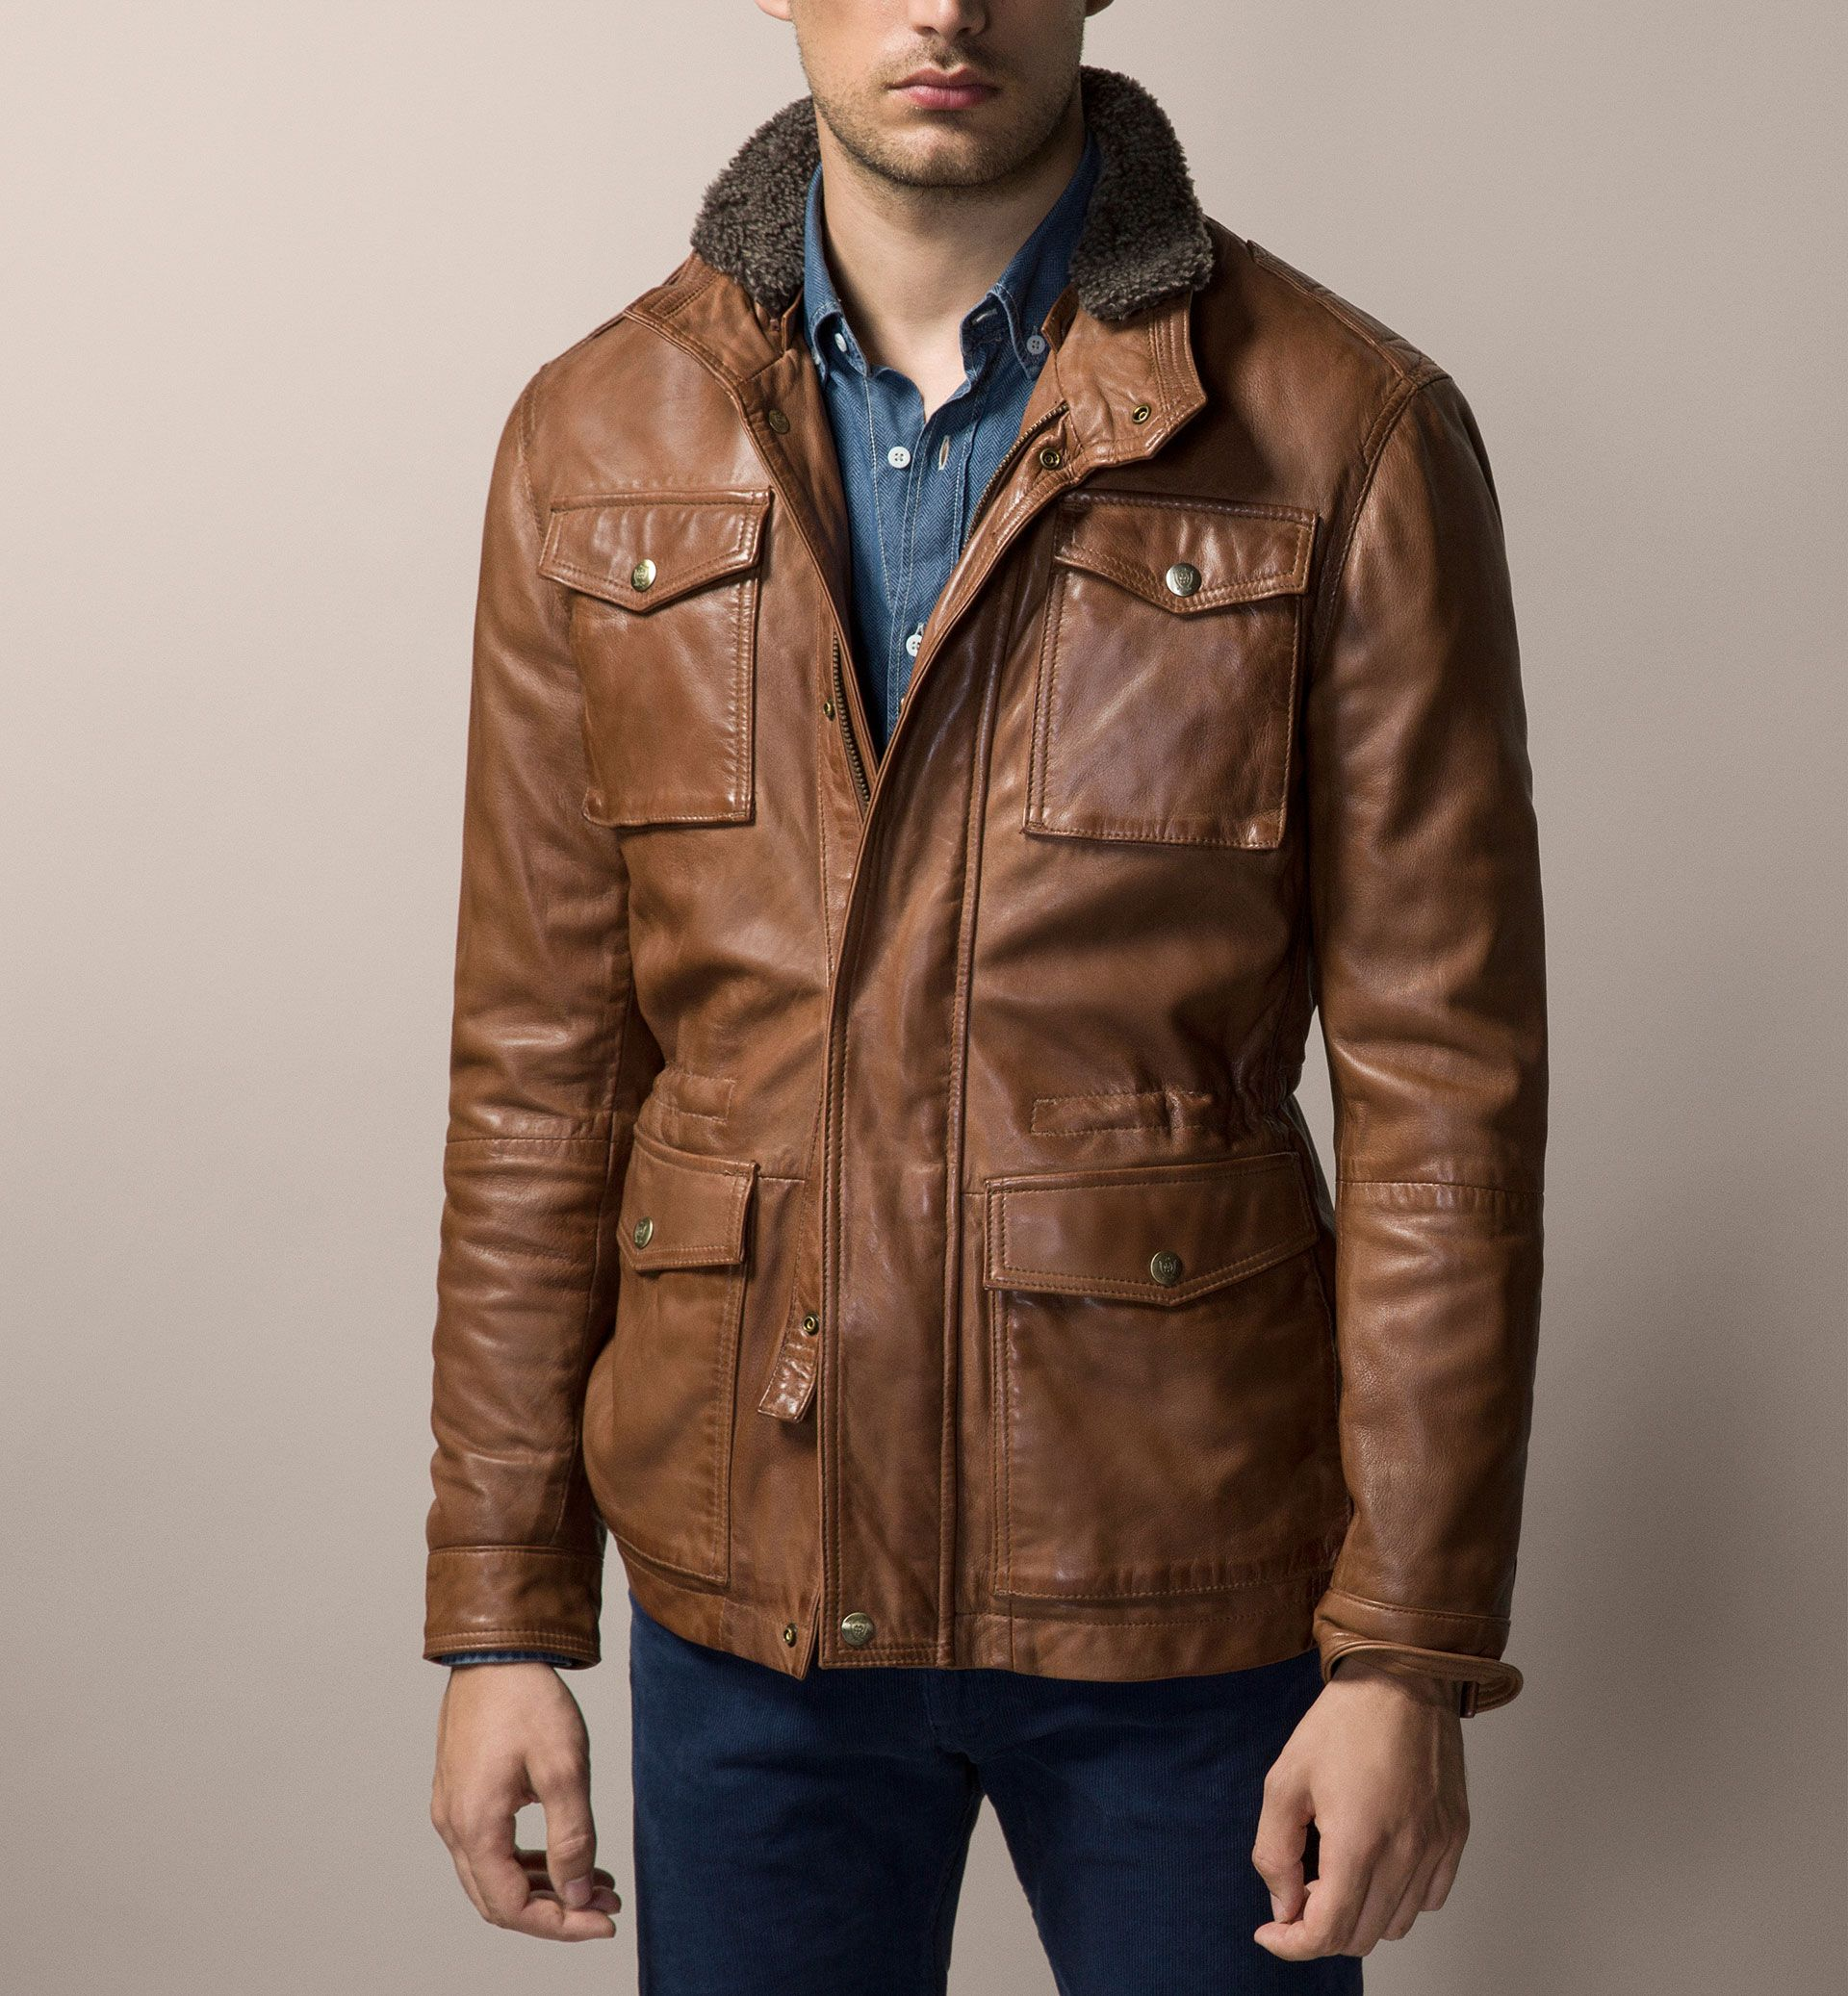 Massimo dutti leather jackets